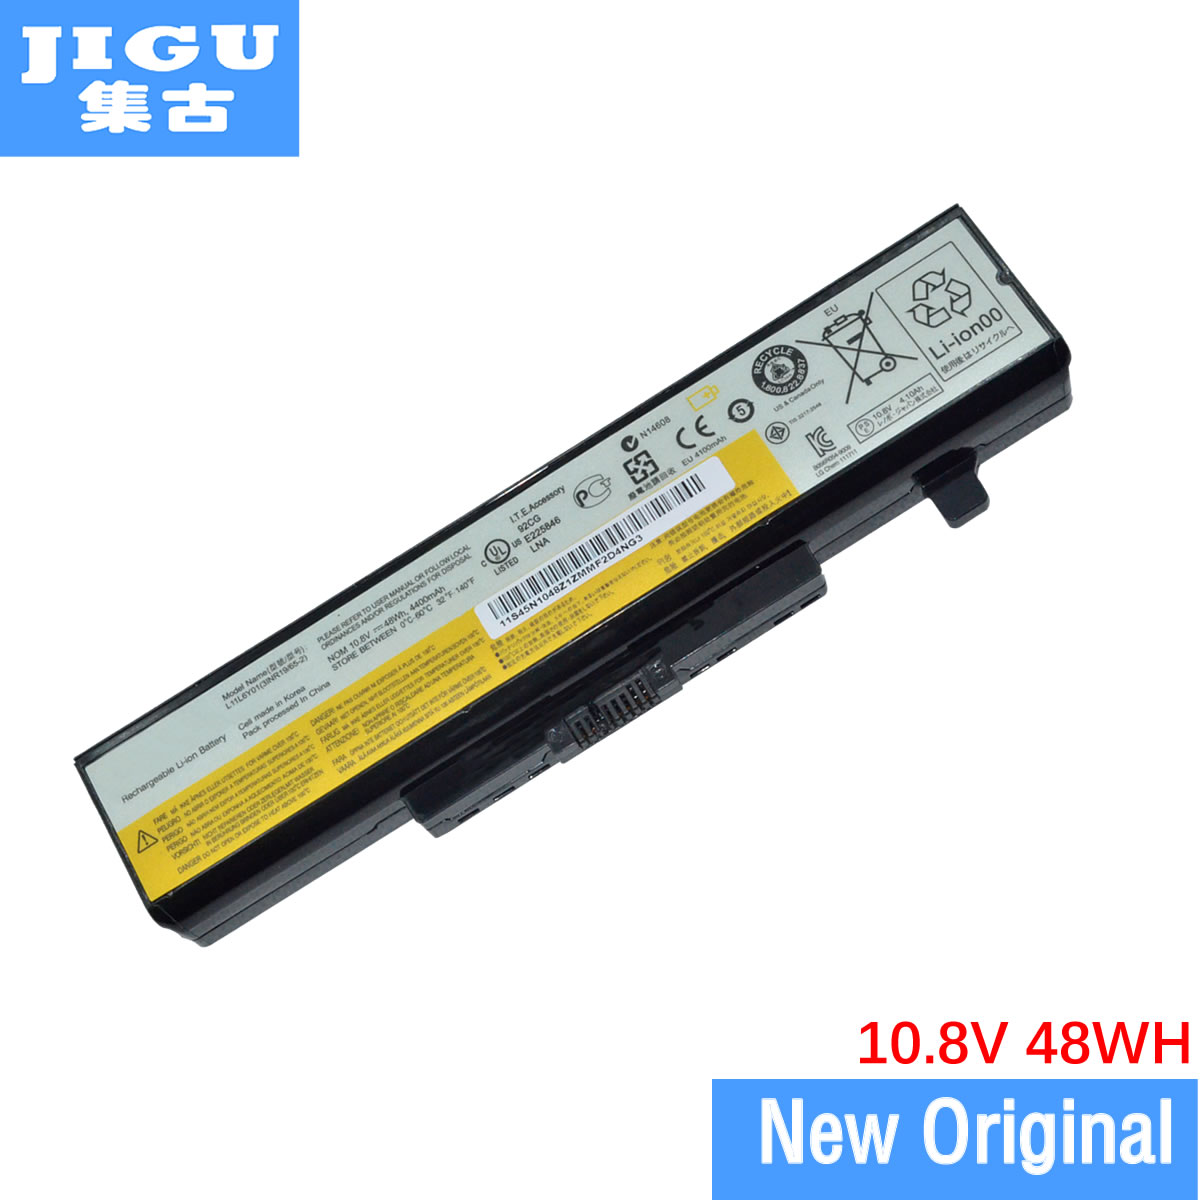 JIGU Original Laptop Battery For Lenovo G480 G485 G500 G510 G580 G585 G700 G710 K49A M490 M495 N581 N586 V480 V480C